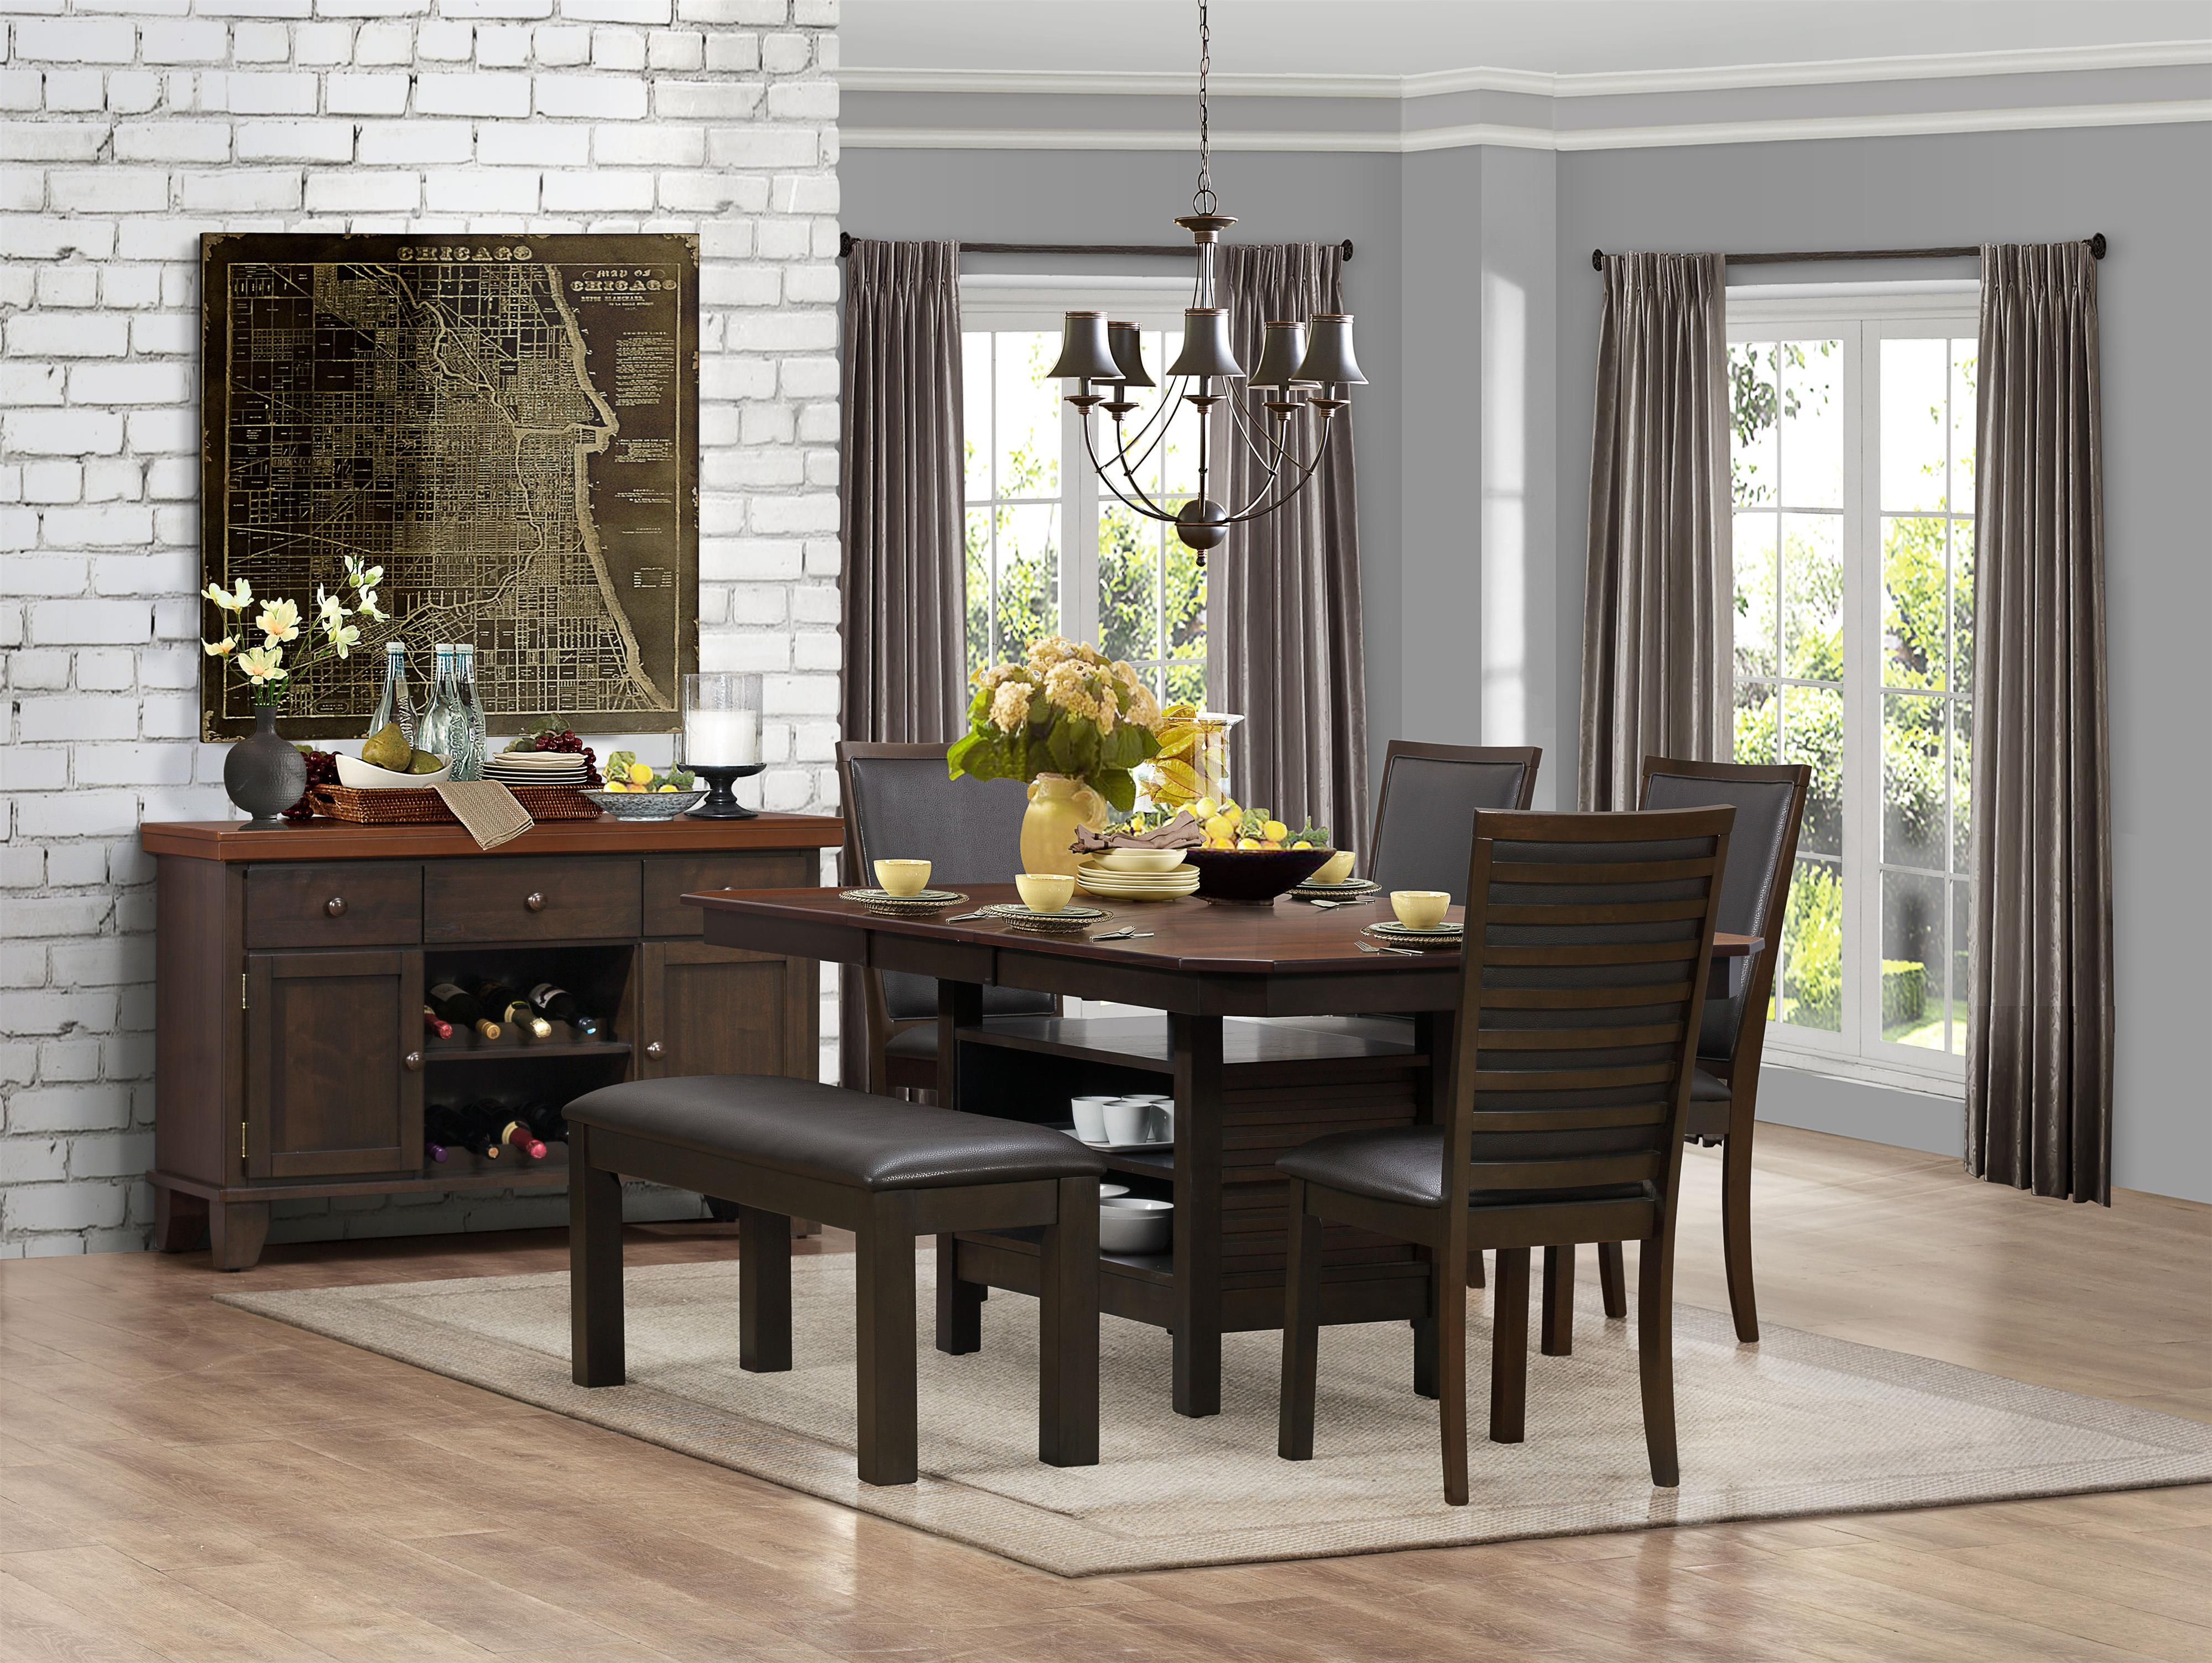 Homelegance Corliss Casual Dining Room Group - Item Number: 5136 Dining Room Group 1